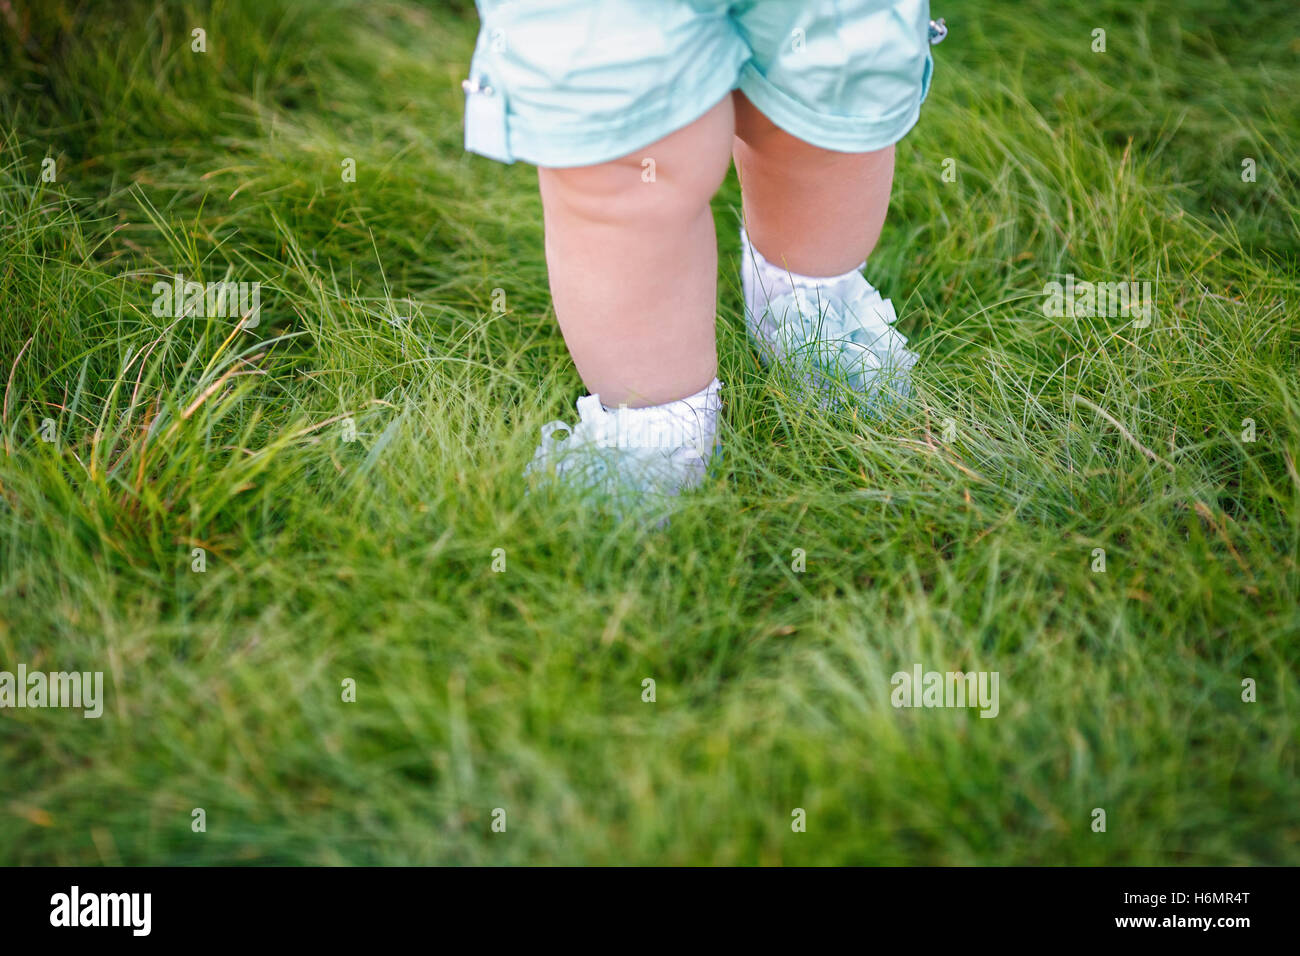 First steps of little girl in summer park on grass - Stock Image